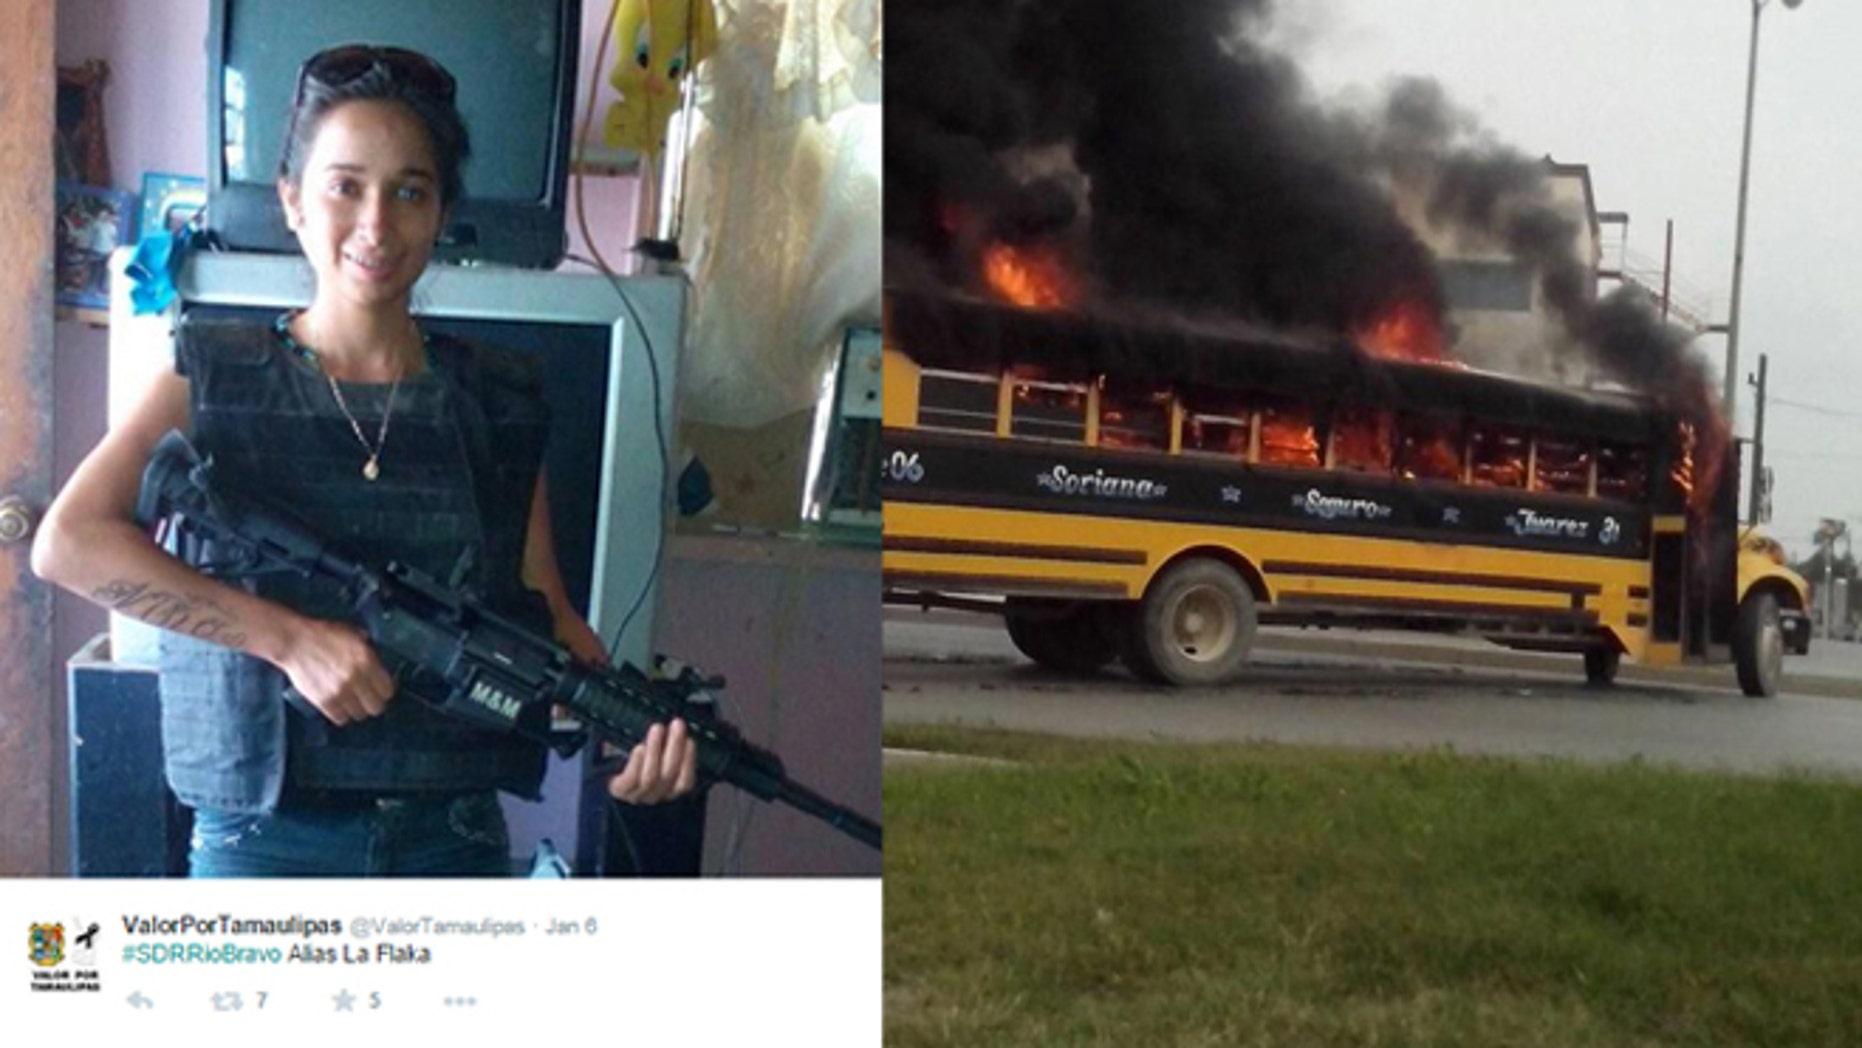 """Cartel assassin Joselyn Alejandra Niño, """"La Flaca,"""" was found dismembered in a cooler. """"La Flaca"""" is seen posing with an assault rifle on social media by Valor Por Tamaulipas. On the right, a school bus blazes on a street of Reynosa, Tamaulipas state, Mexico on April 17, 2015. Gunfights erupted in broad daylight on Friday in a Mexican city across the US border and vehicles were torched, apparently in reaction to a drug cartel leader's arrest, officials said."""